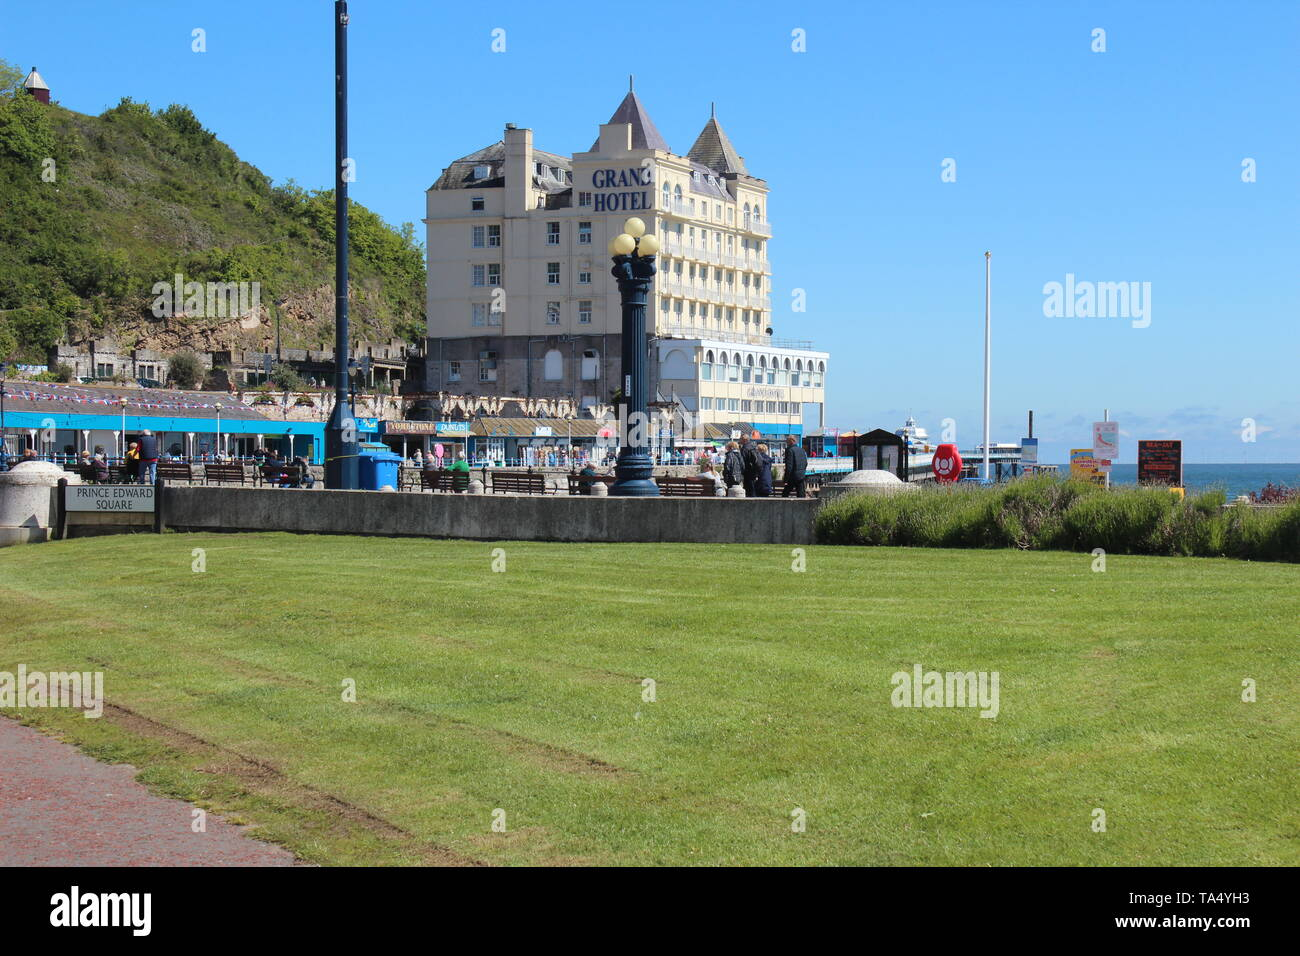 Llandudno is a coastal town in North Wales it's know for it's north shore beach and the 19th century pier - Stock Image